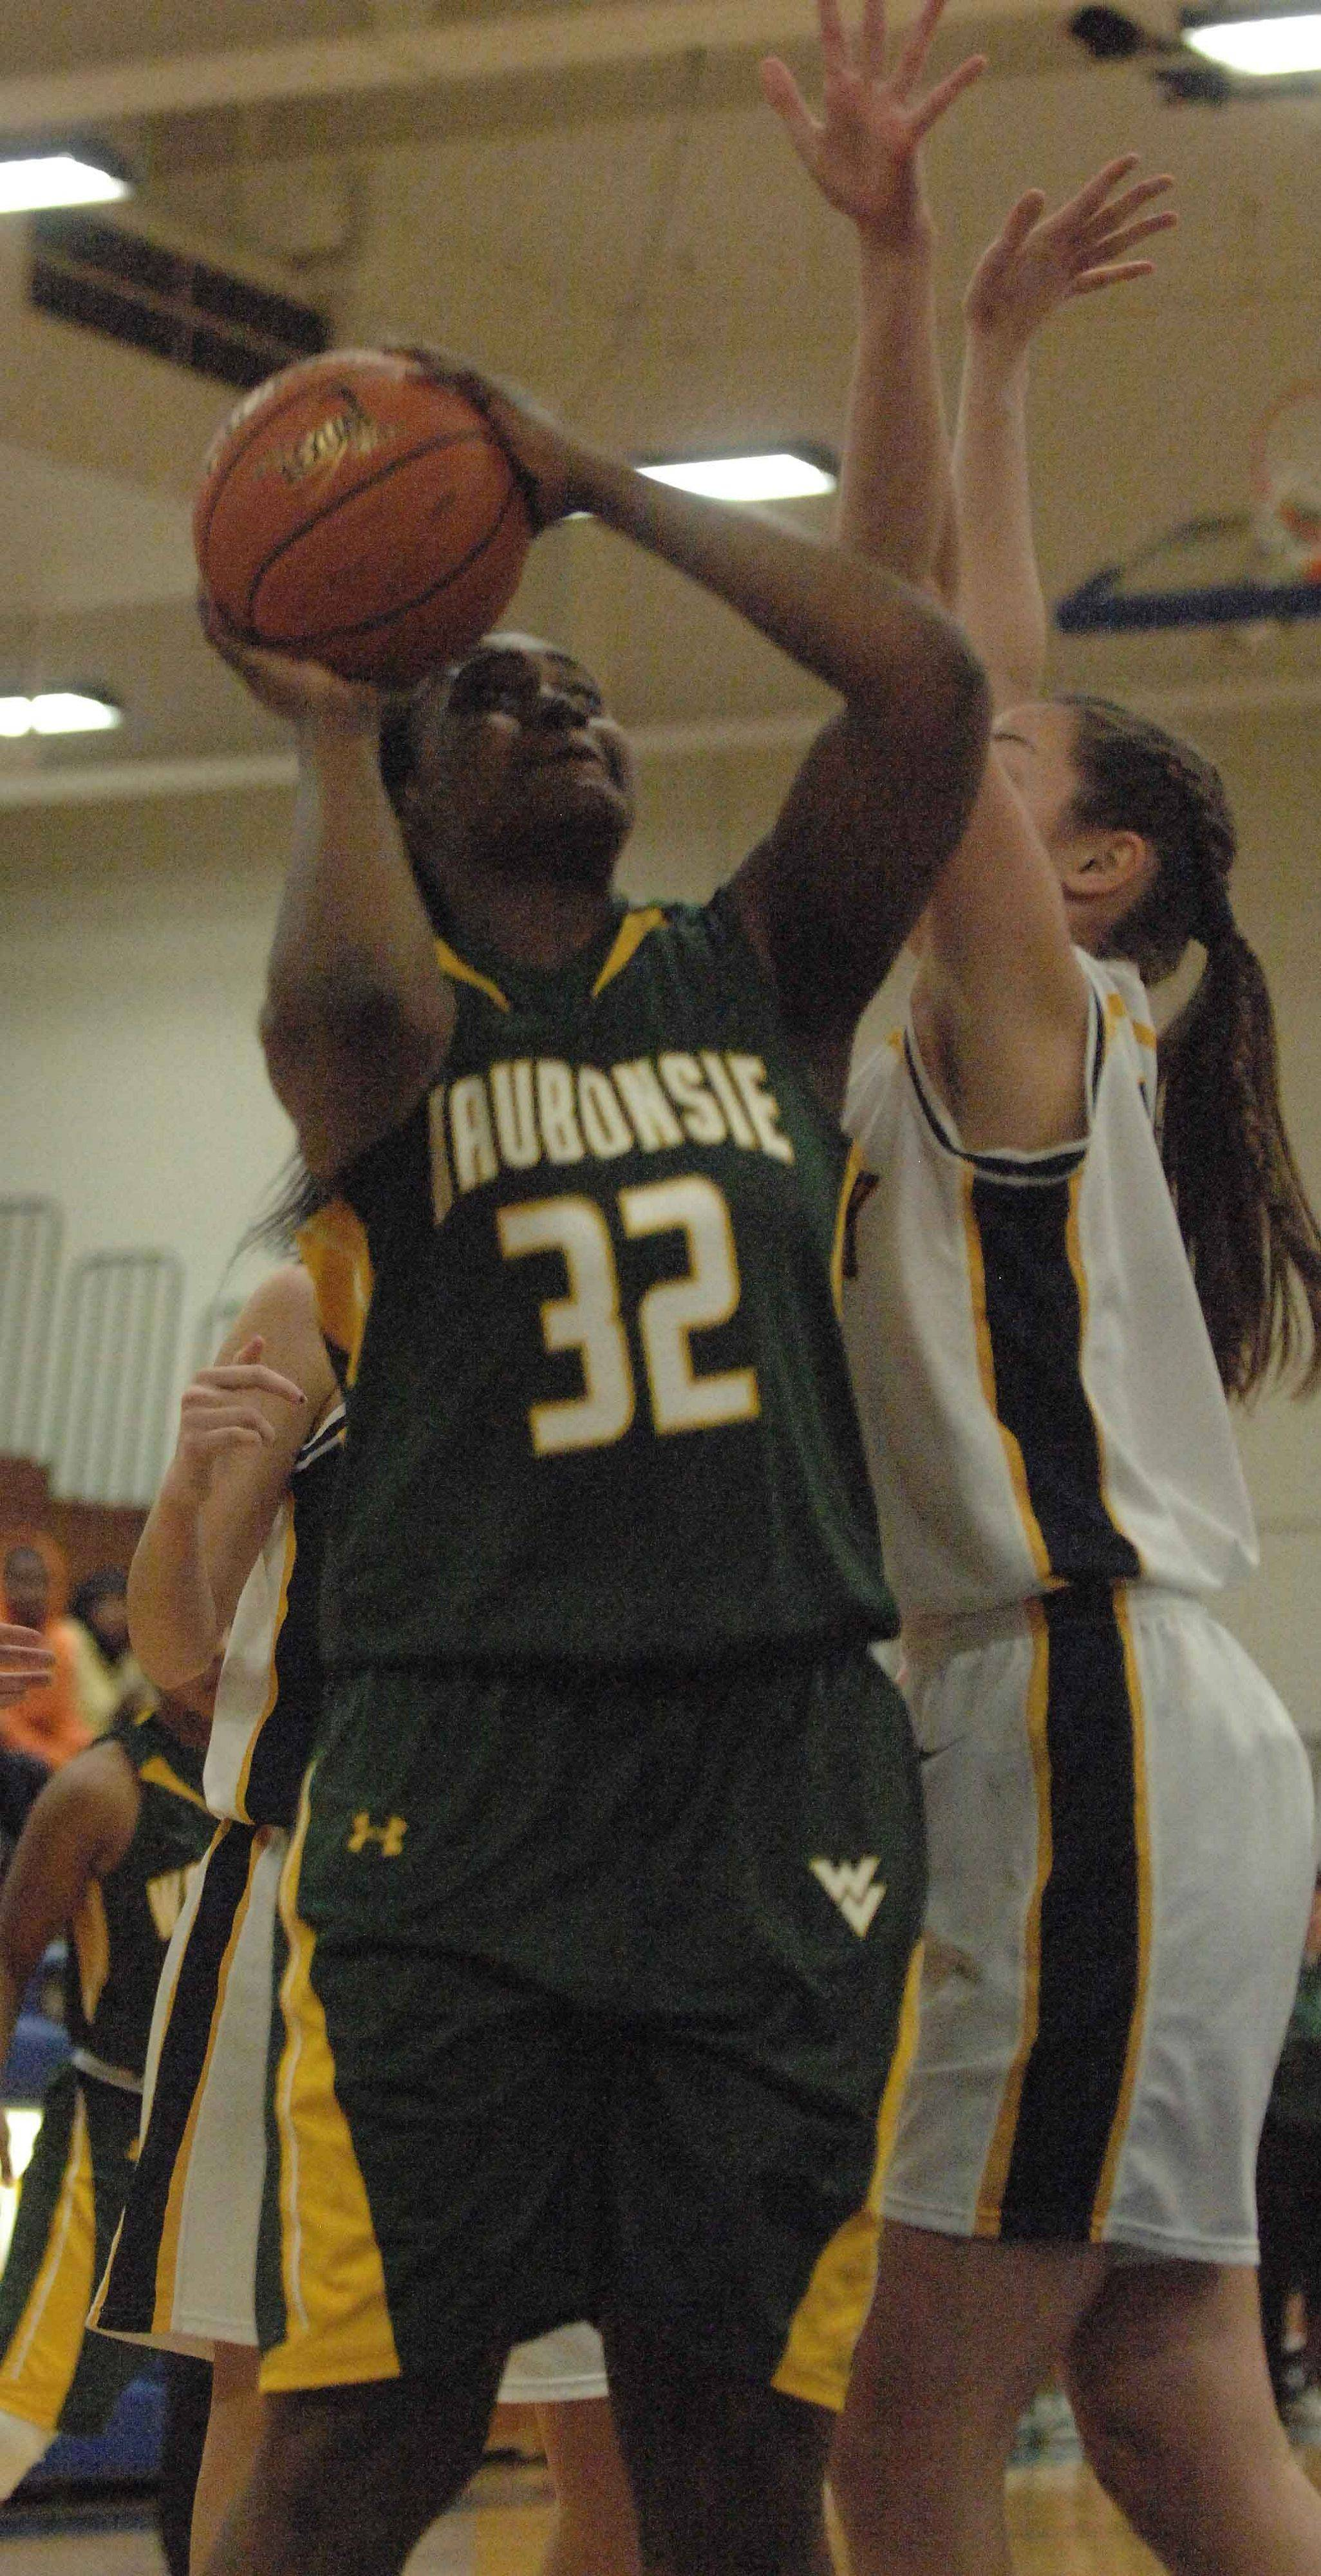 Rachael Ross of Waubonsie takes a shot during the Waubonsie Valley vs. Glenbrook South game at Wheaton North Wednesday.